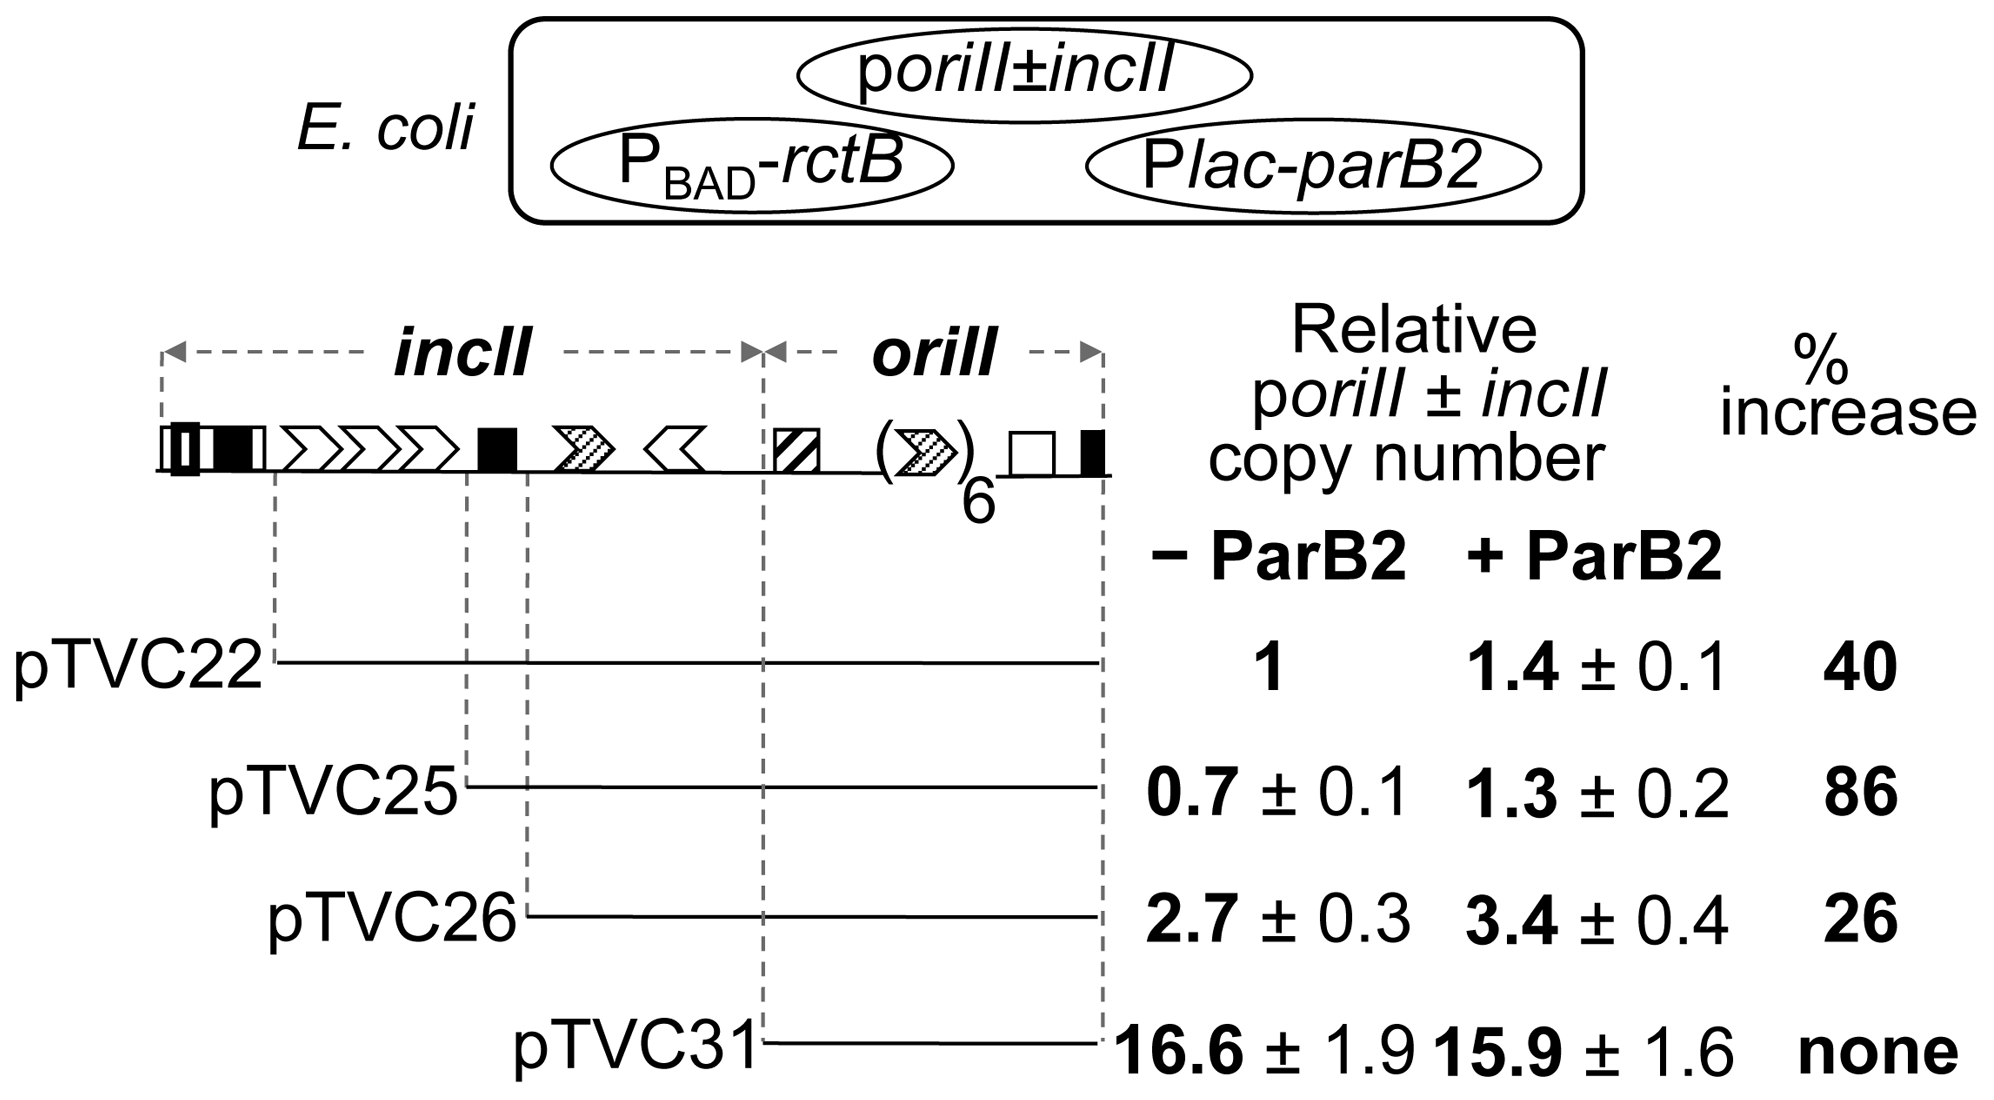 Increase in copy number of <i>oriII</i> plasmids by ParB2 in the absence of <i>parS2-B</i> in <i>E. coli</i>.